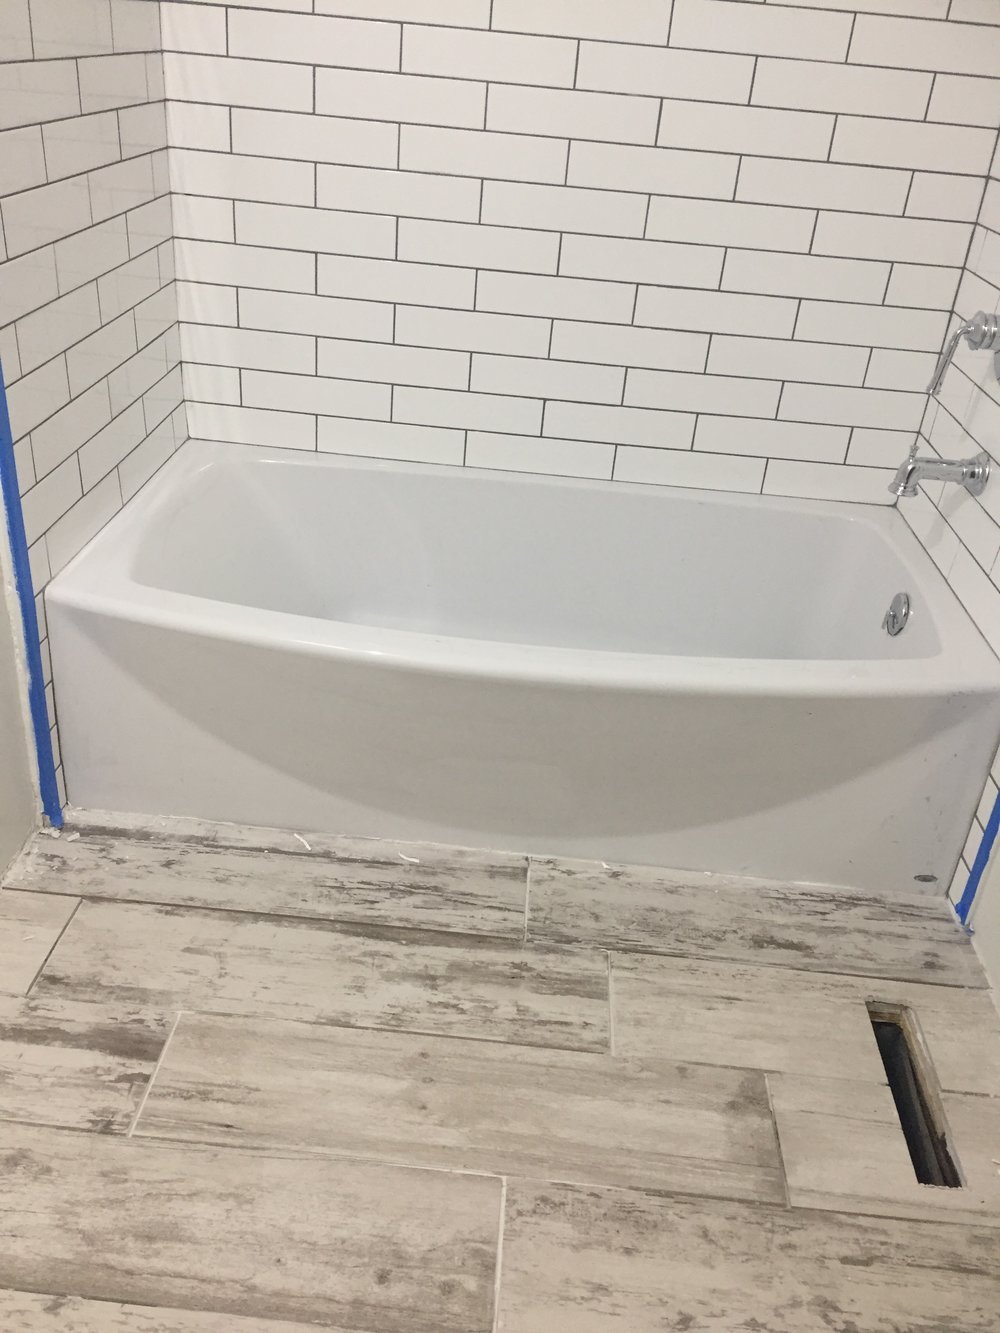 HALL BATH: Flooring Complete